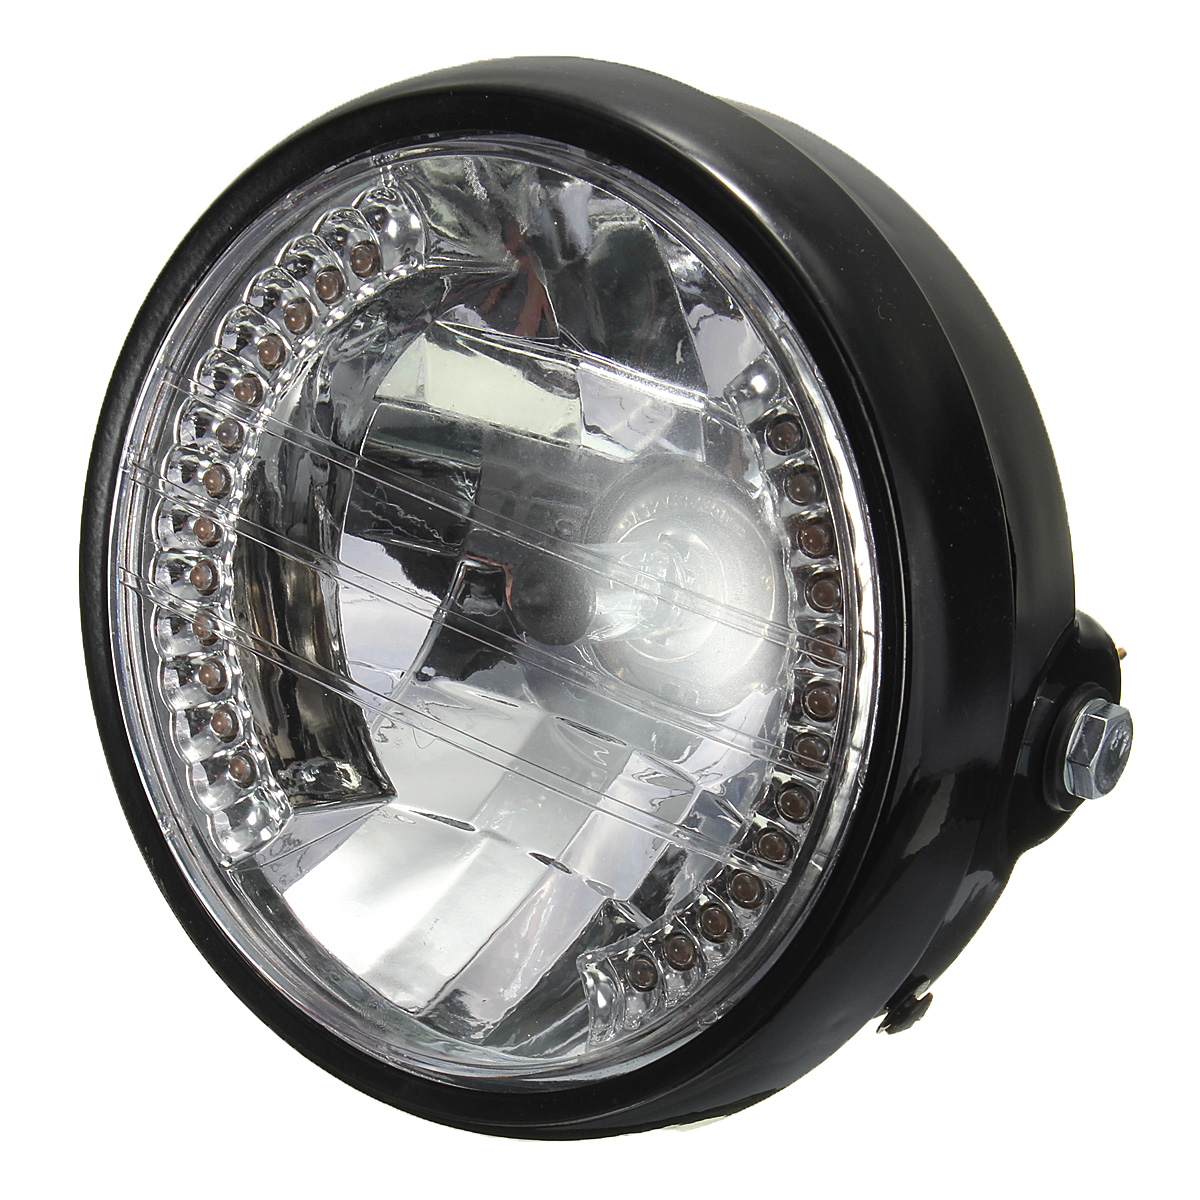 7 inch 35w motorcycle h4 halogen headlight halo lamp led turn signal for honda light lazada. Black Bedroom Furniture Sets. Home Design Ideas